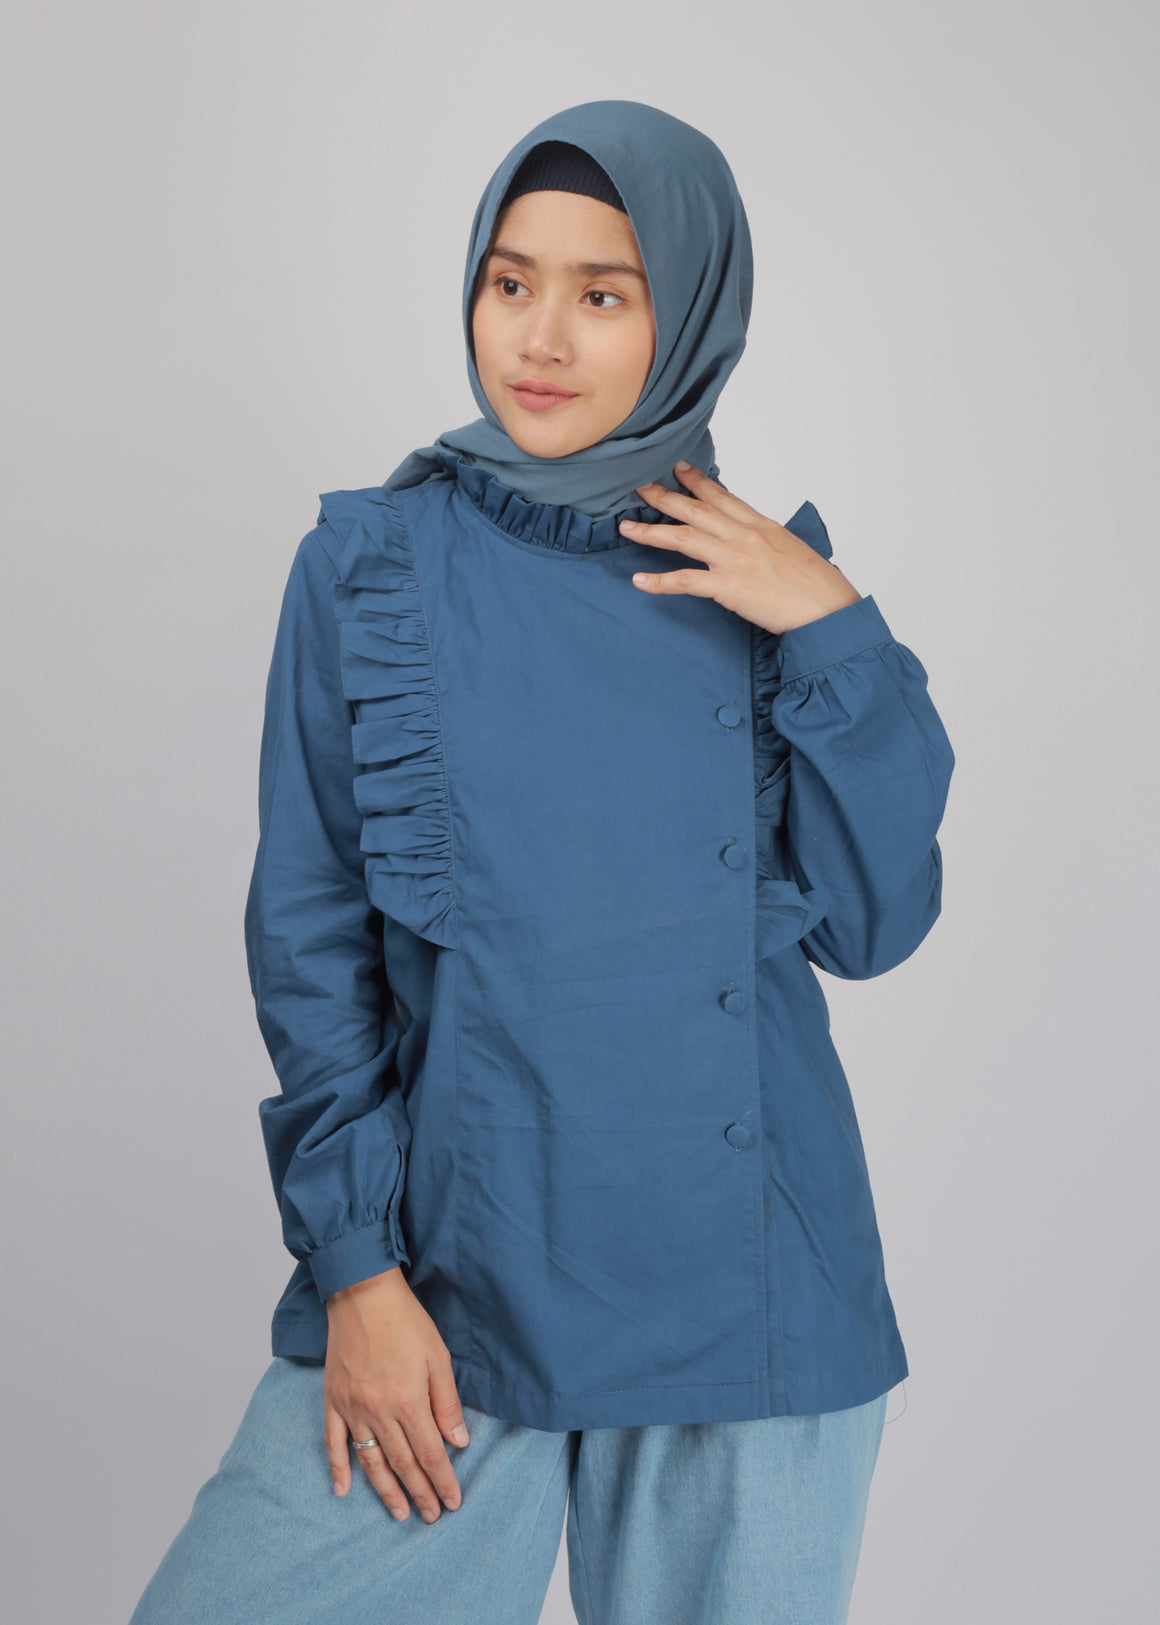 Cloe Top by Eshe